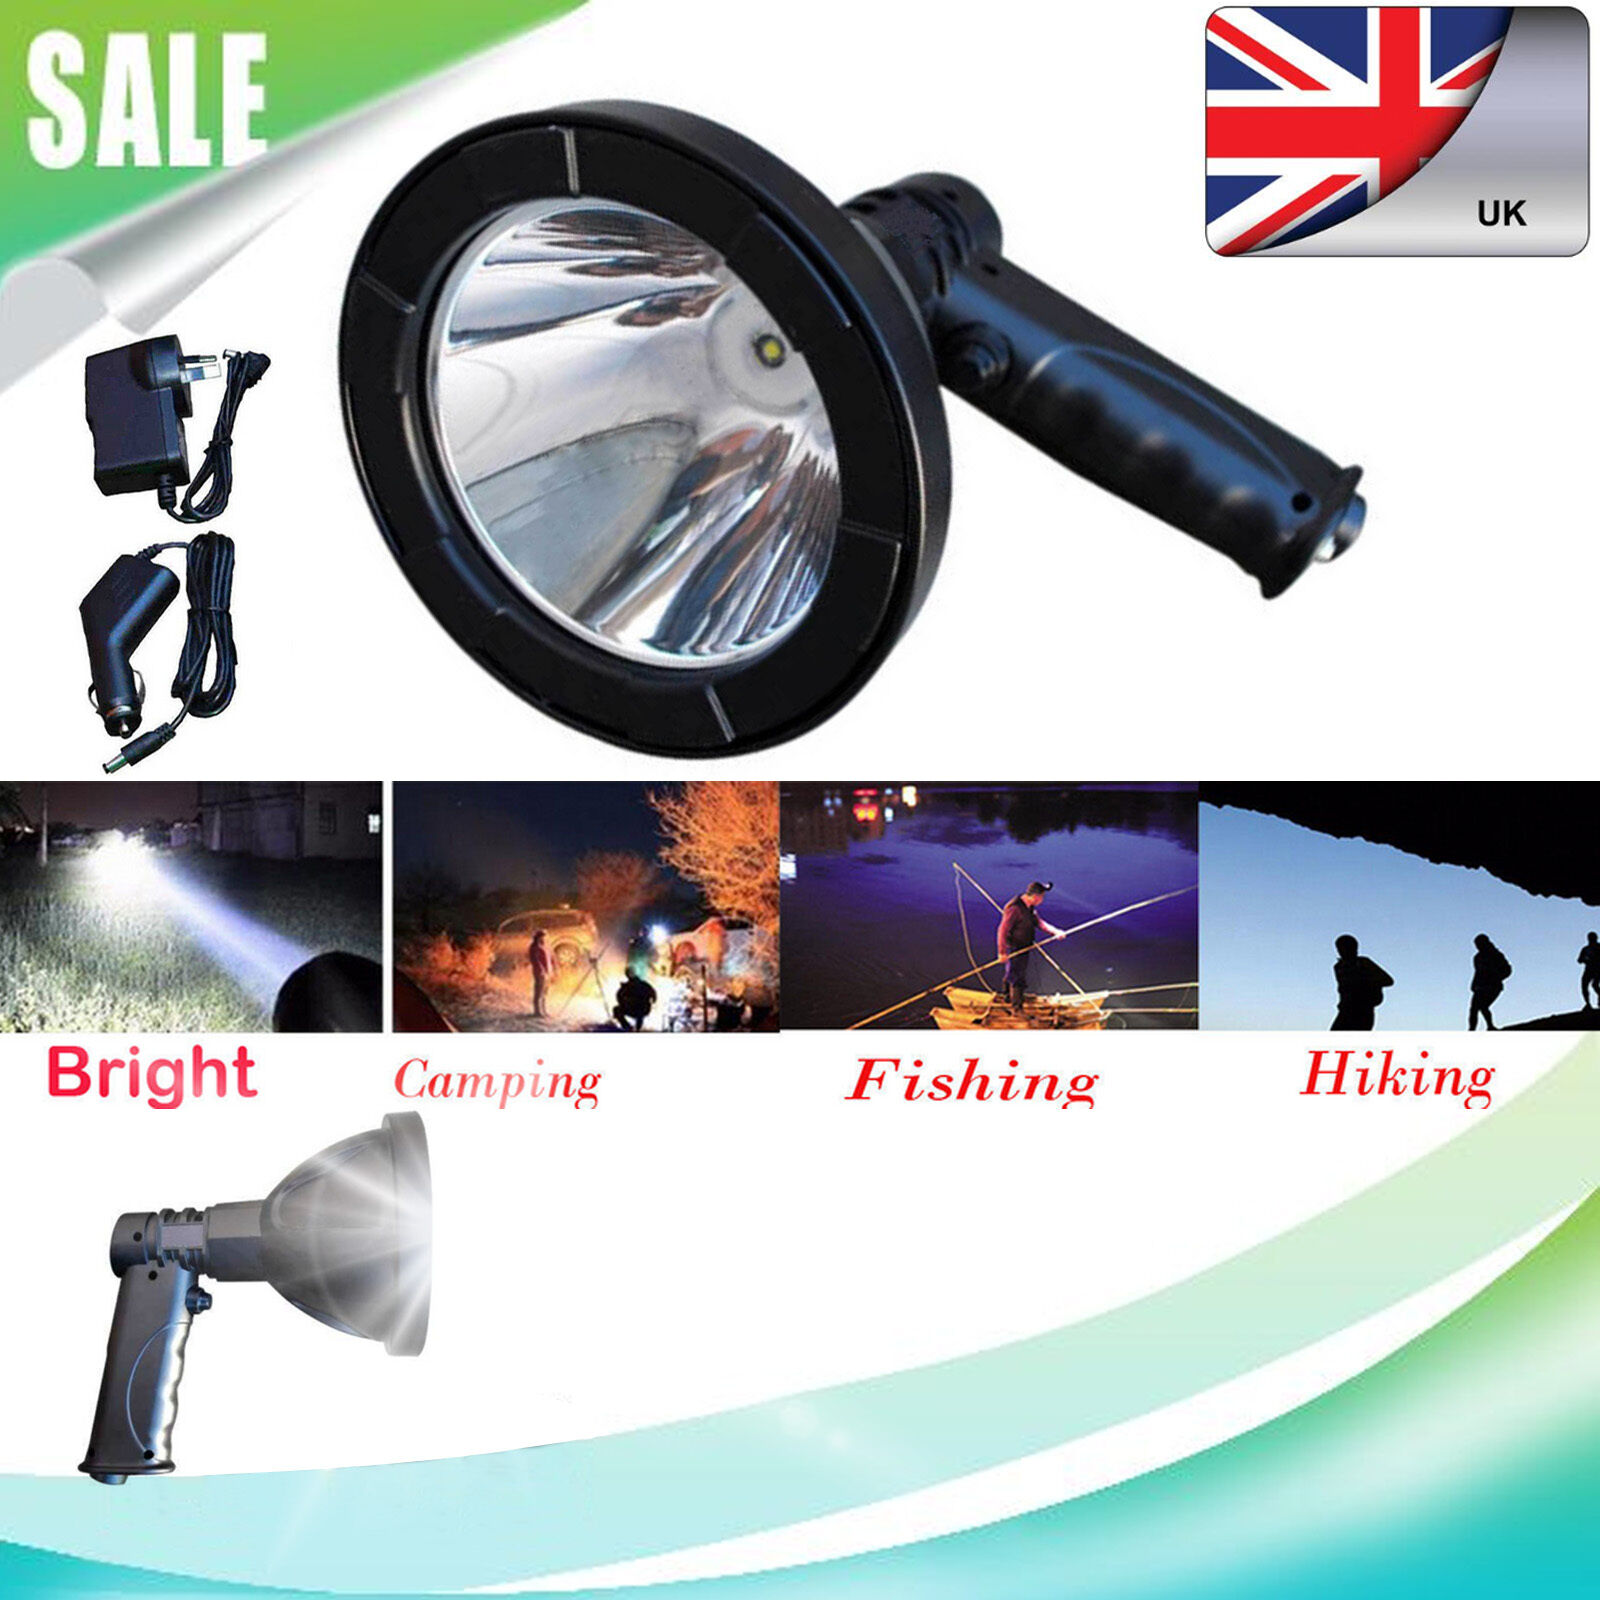 320W T6 LED Rechargable Handheld Spotlight Fishing Hunting Light Foxing Shooting